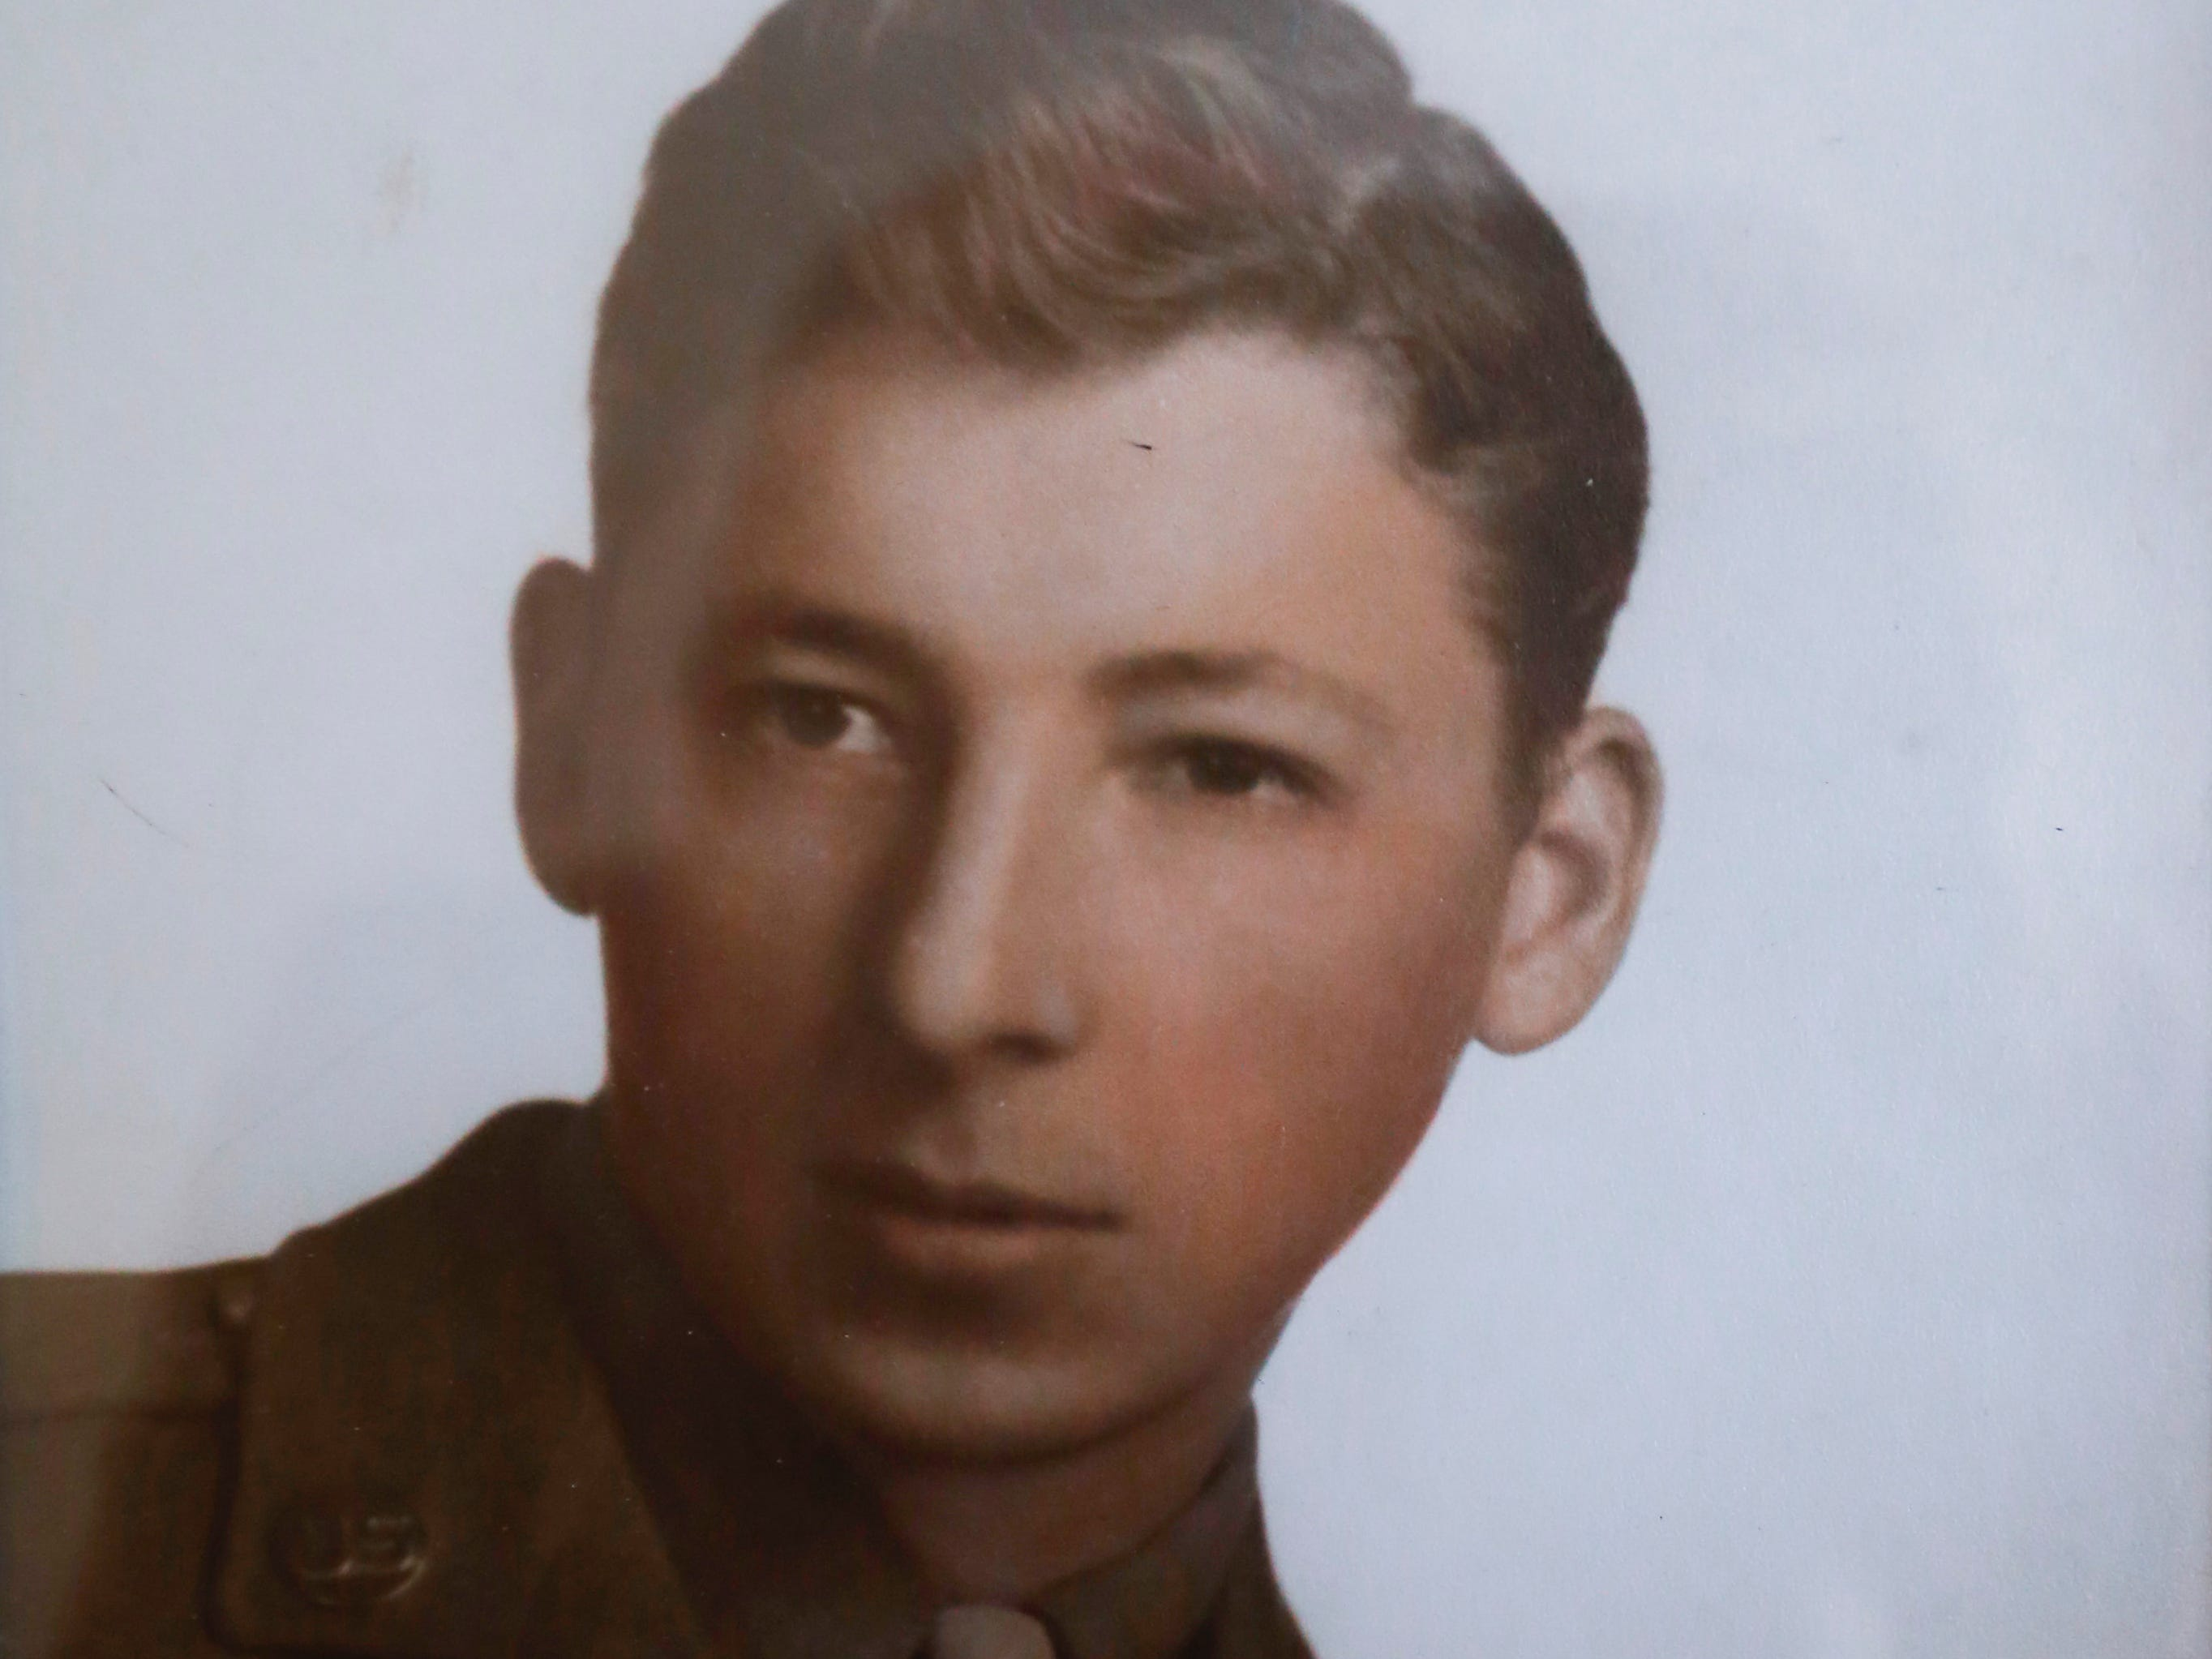 A photo of Stephen Floyd from when he was 23 and before he deployed for combat during WWII.